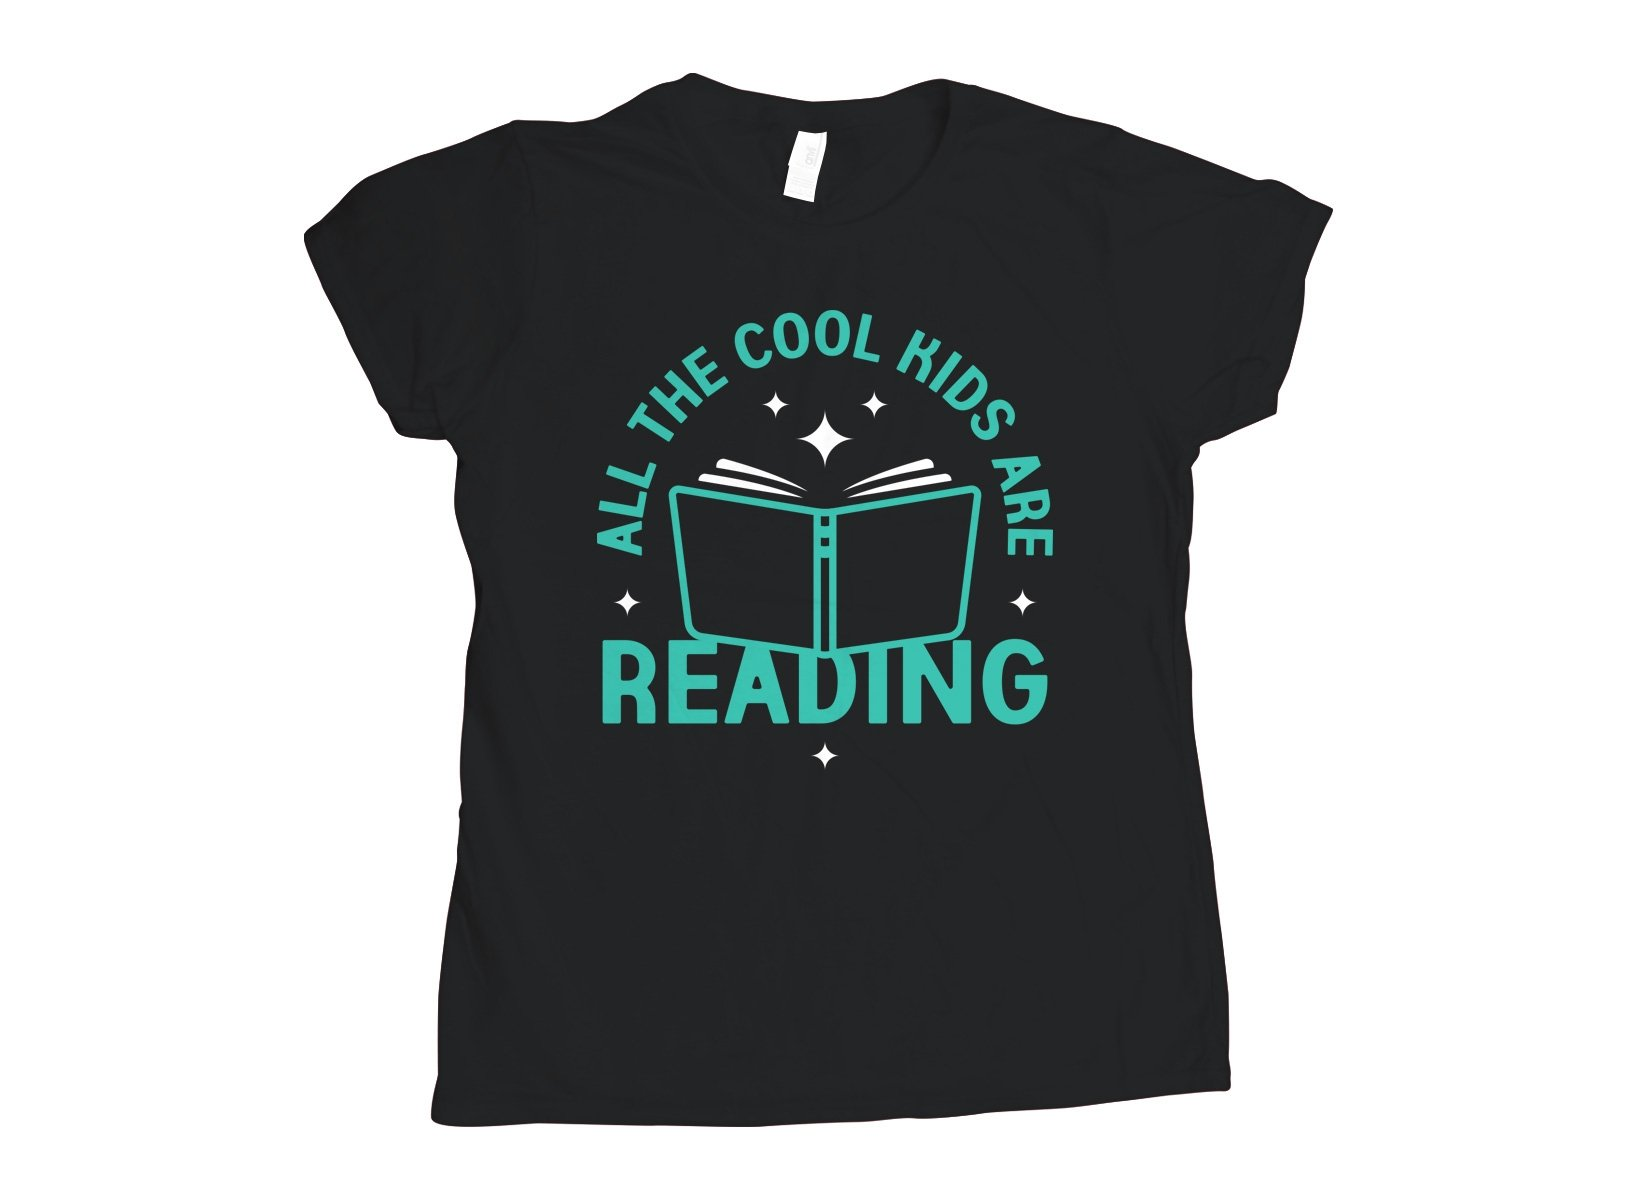 All The Cool Kids Are Reading on Womens T-Shirt